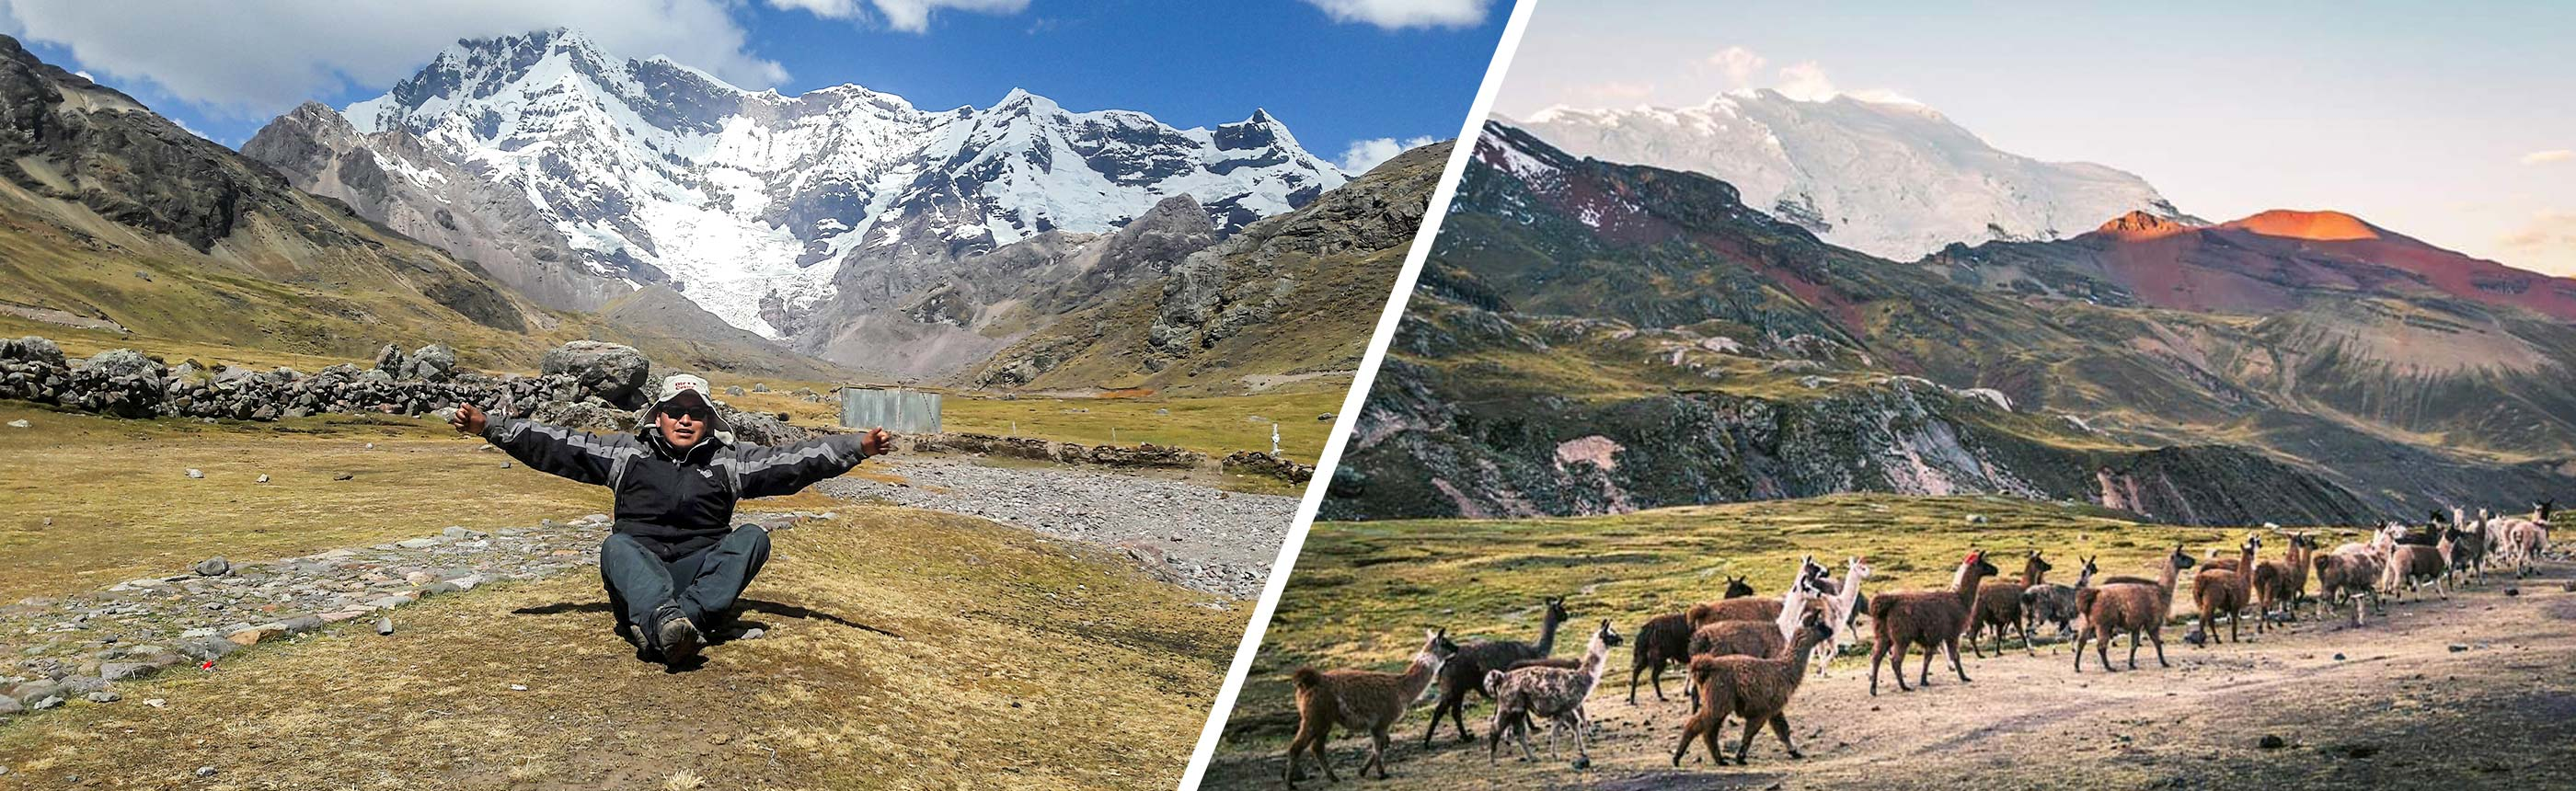 Ausangate Trek and rainbow mountain, 4days/3nights enjoy this unique experience in the Andes off the beaten track